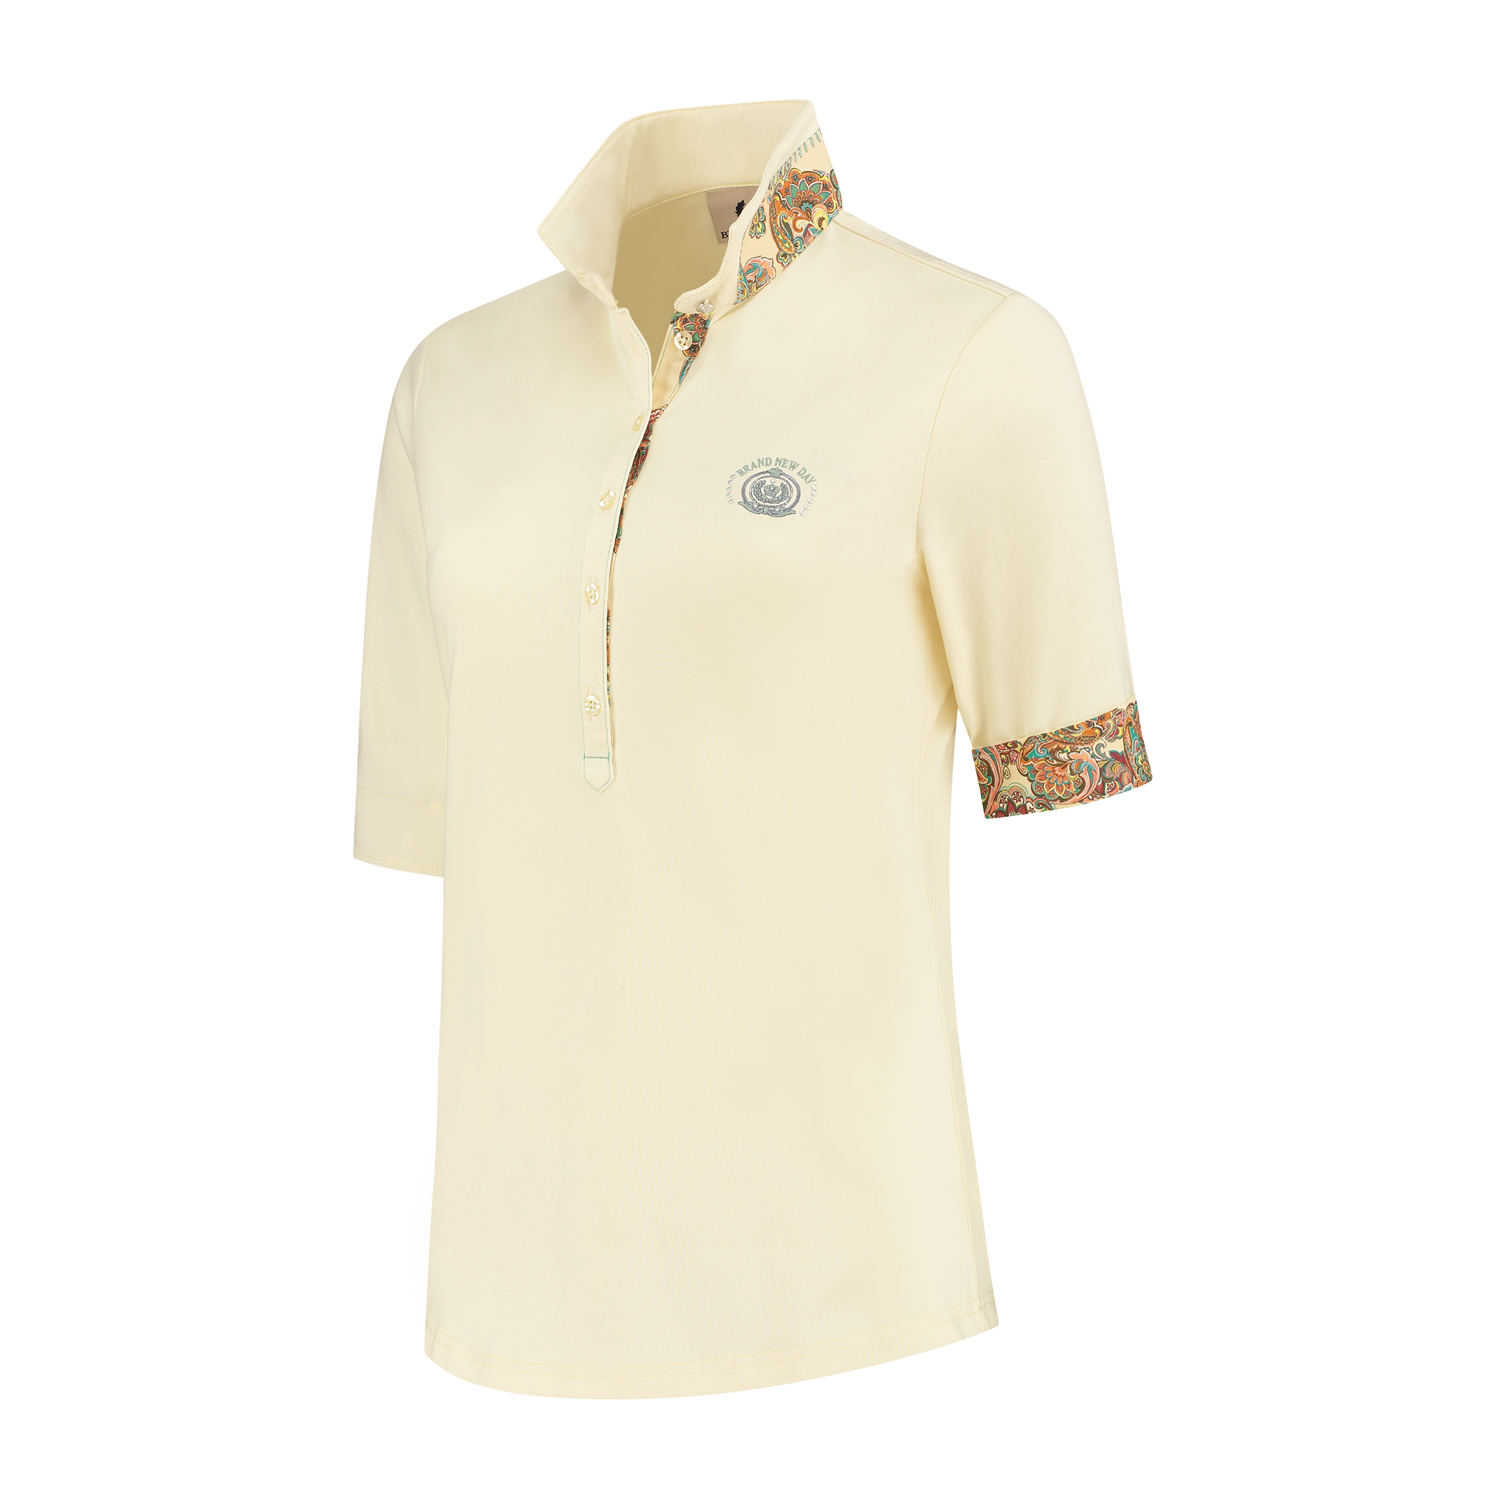 Brand new day Polo